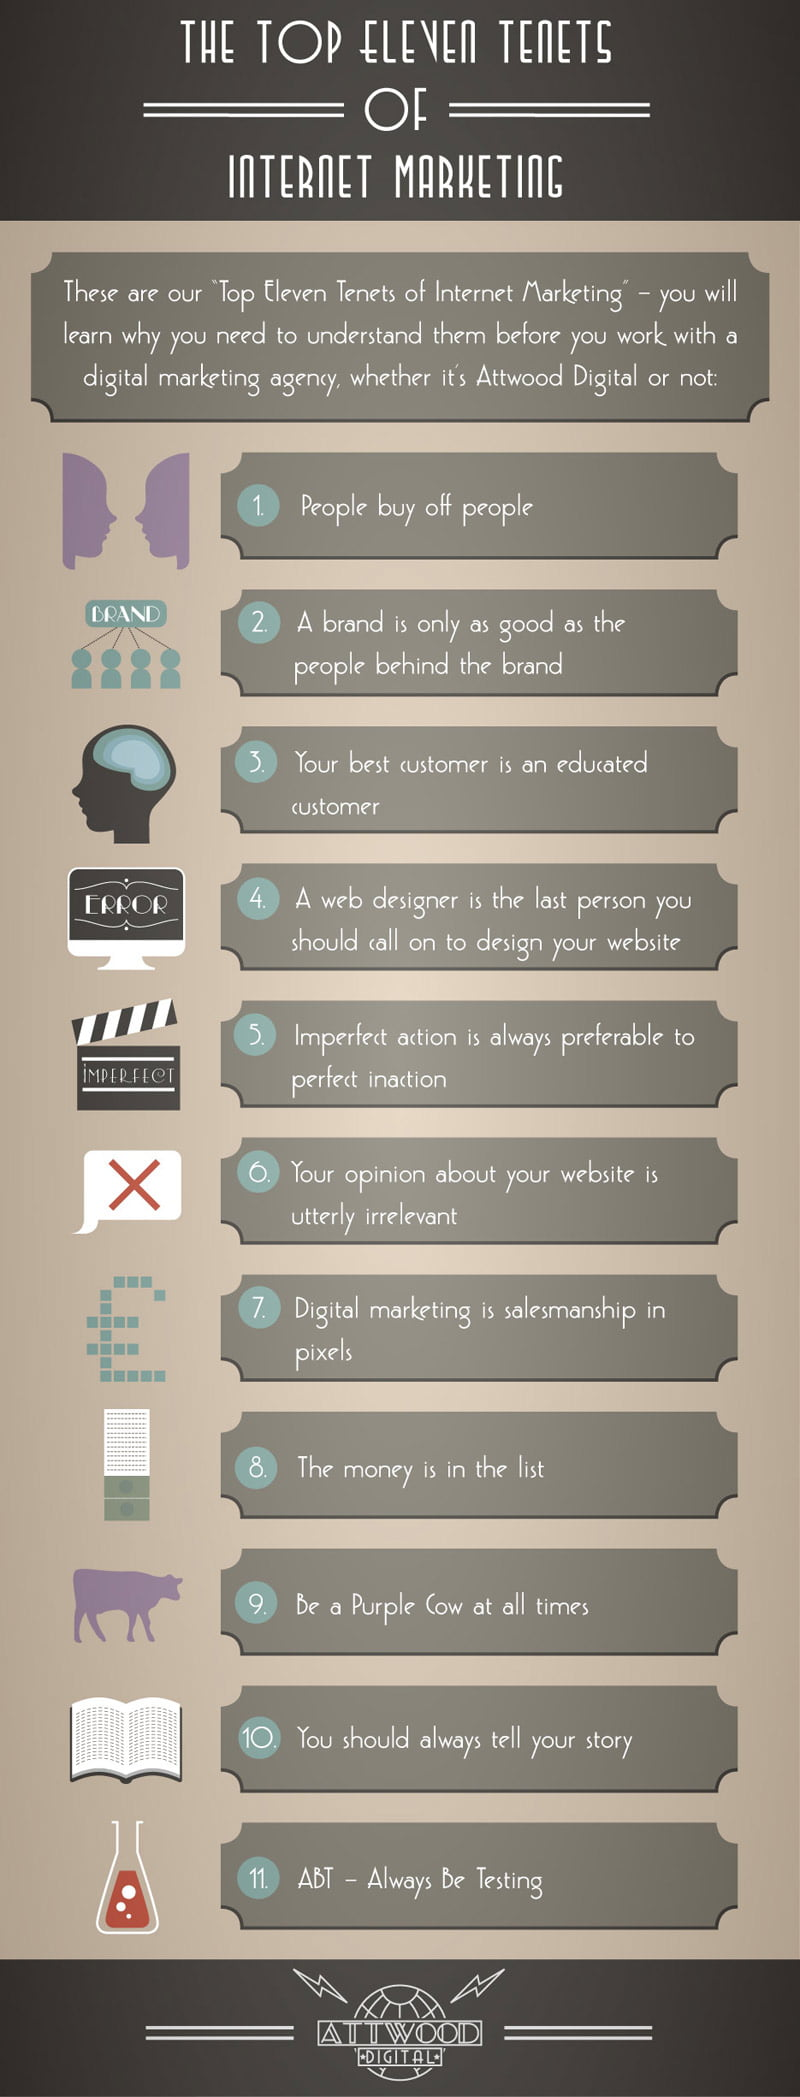 Attwood Digital's Eleven Tenets of Internet Marketing